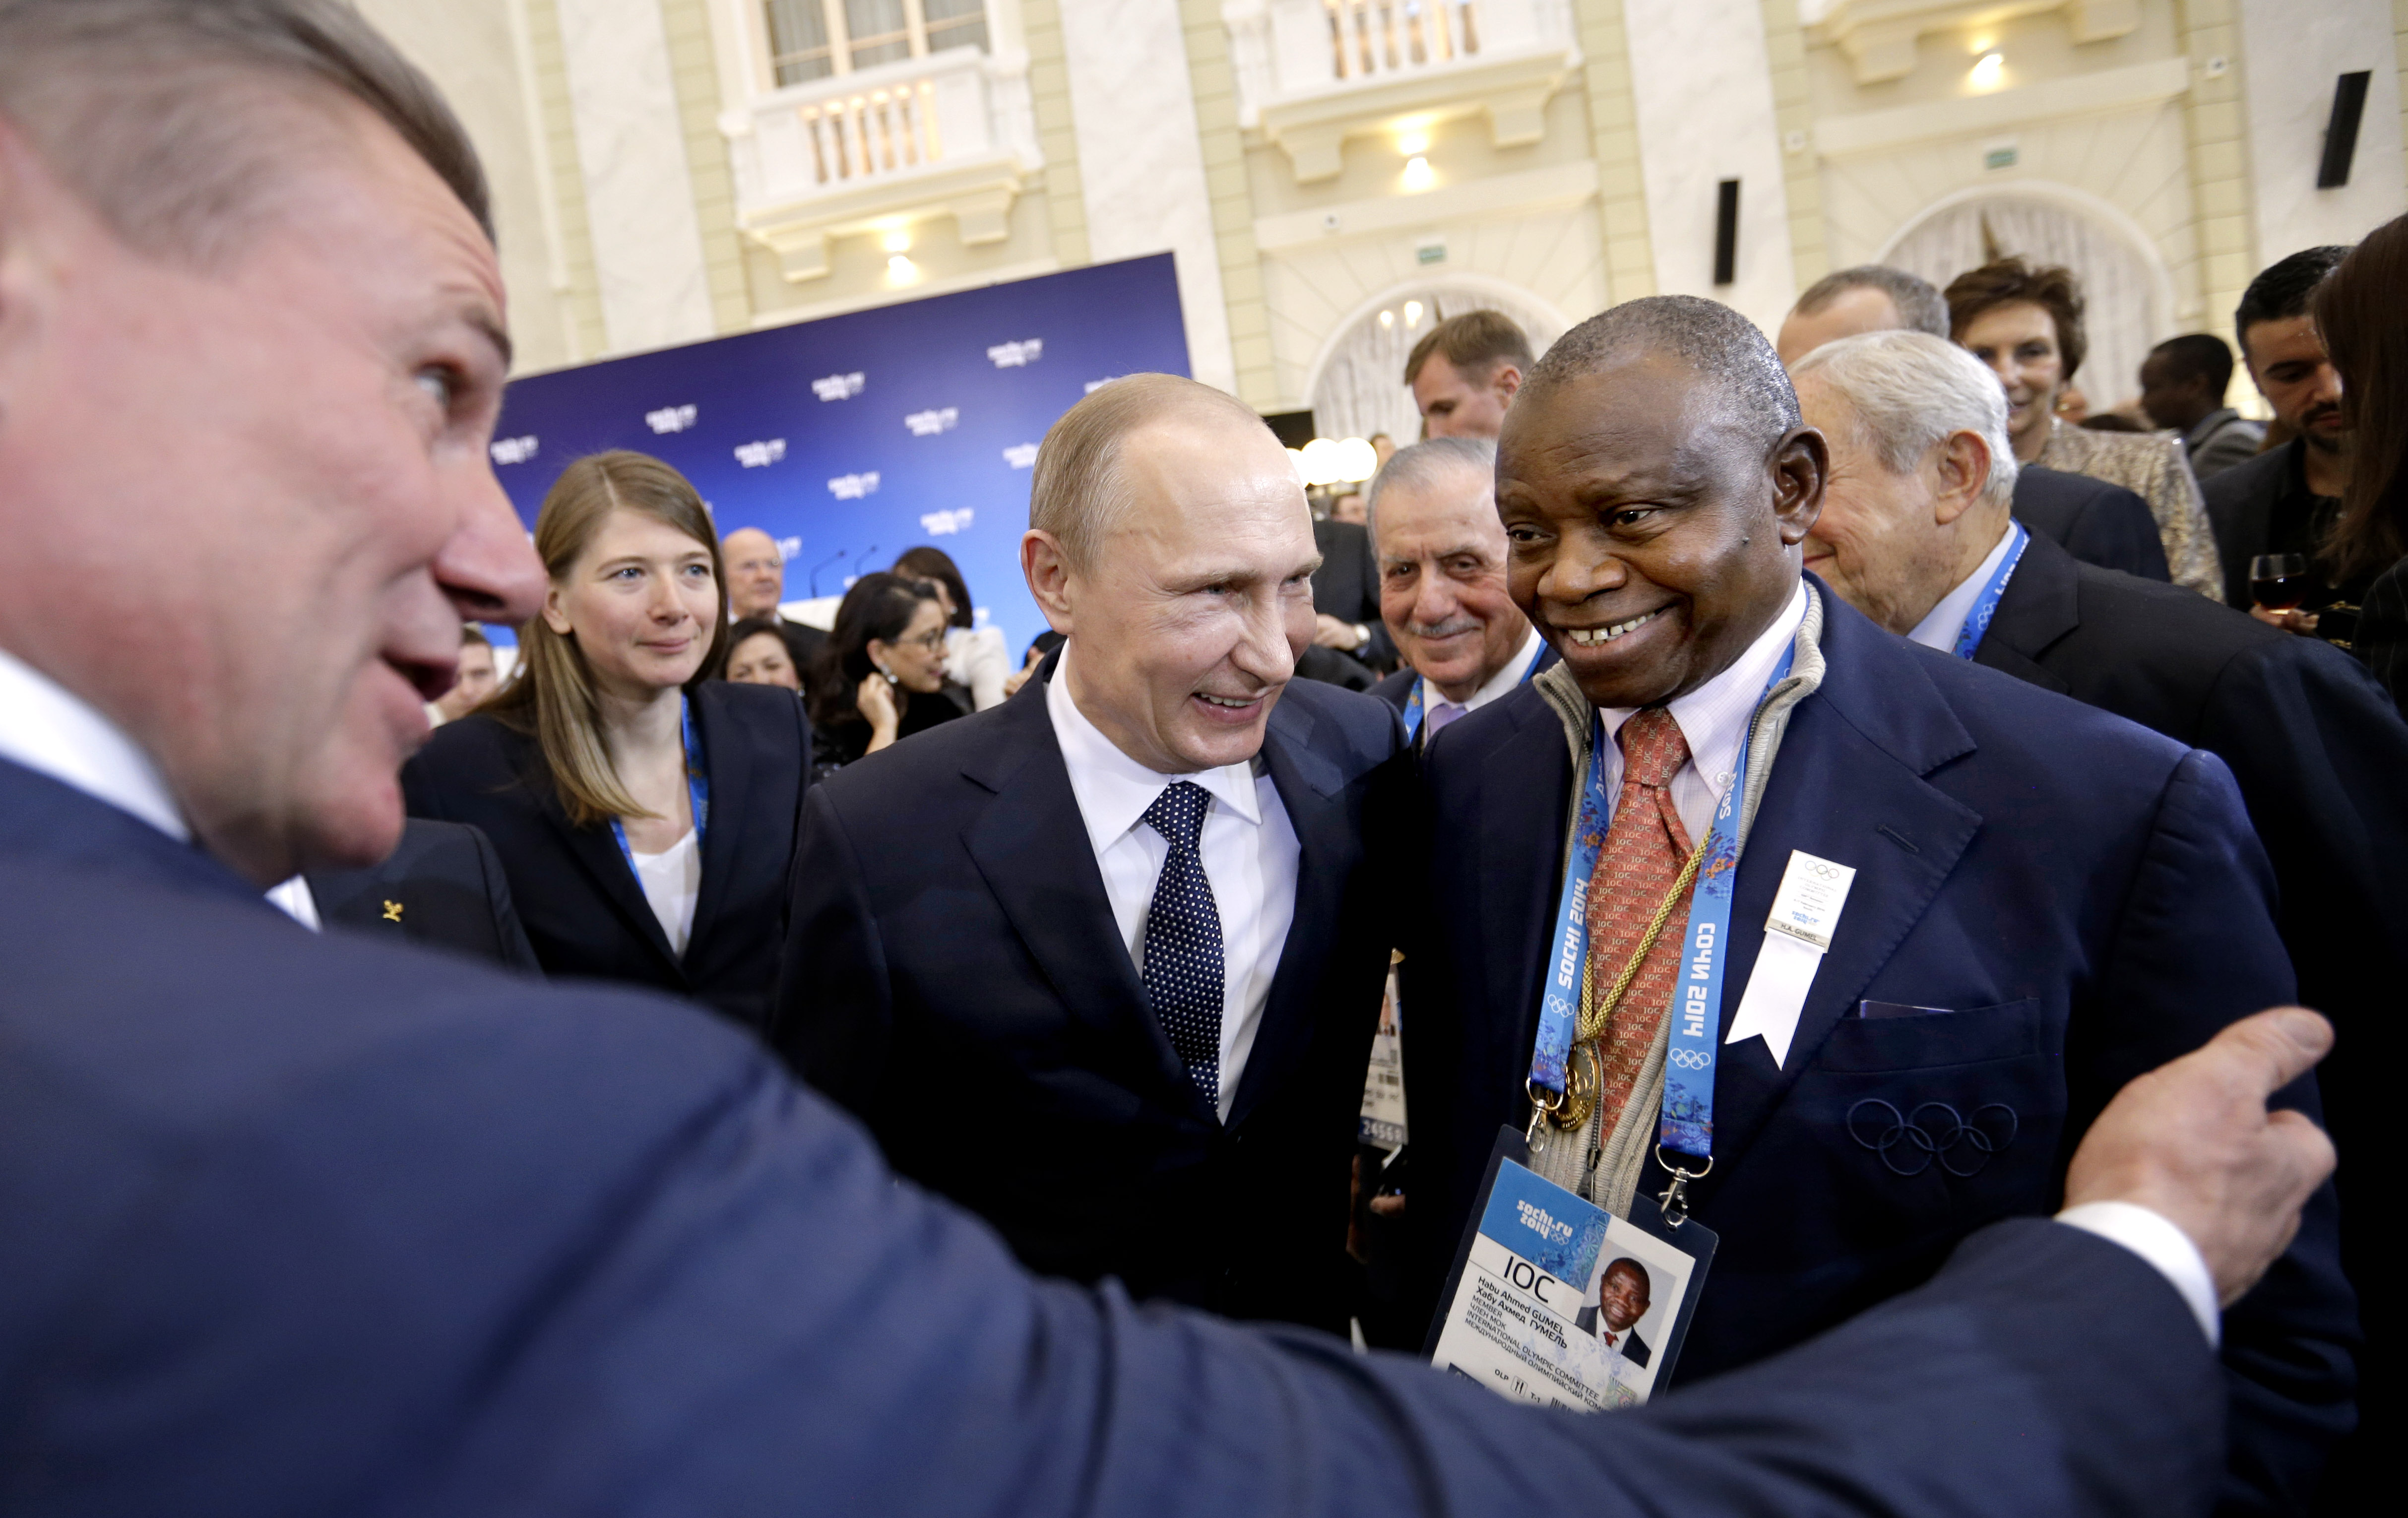 Russian President Vladimir Putin, center, greets International Olympic Committee members Habu Ahmed Gumel, right, and  executive board member Sergei Bubka, left, at a welcoming event ahead of the upcoming 2014 Winter Olympics at the Rus Hotel, Tuesday, Feb. 4, 2014, in Sochi, Russia. (AP Photo/David Goldman, Pool)